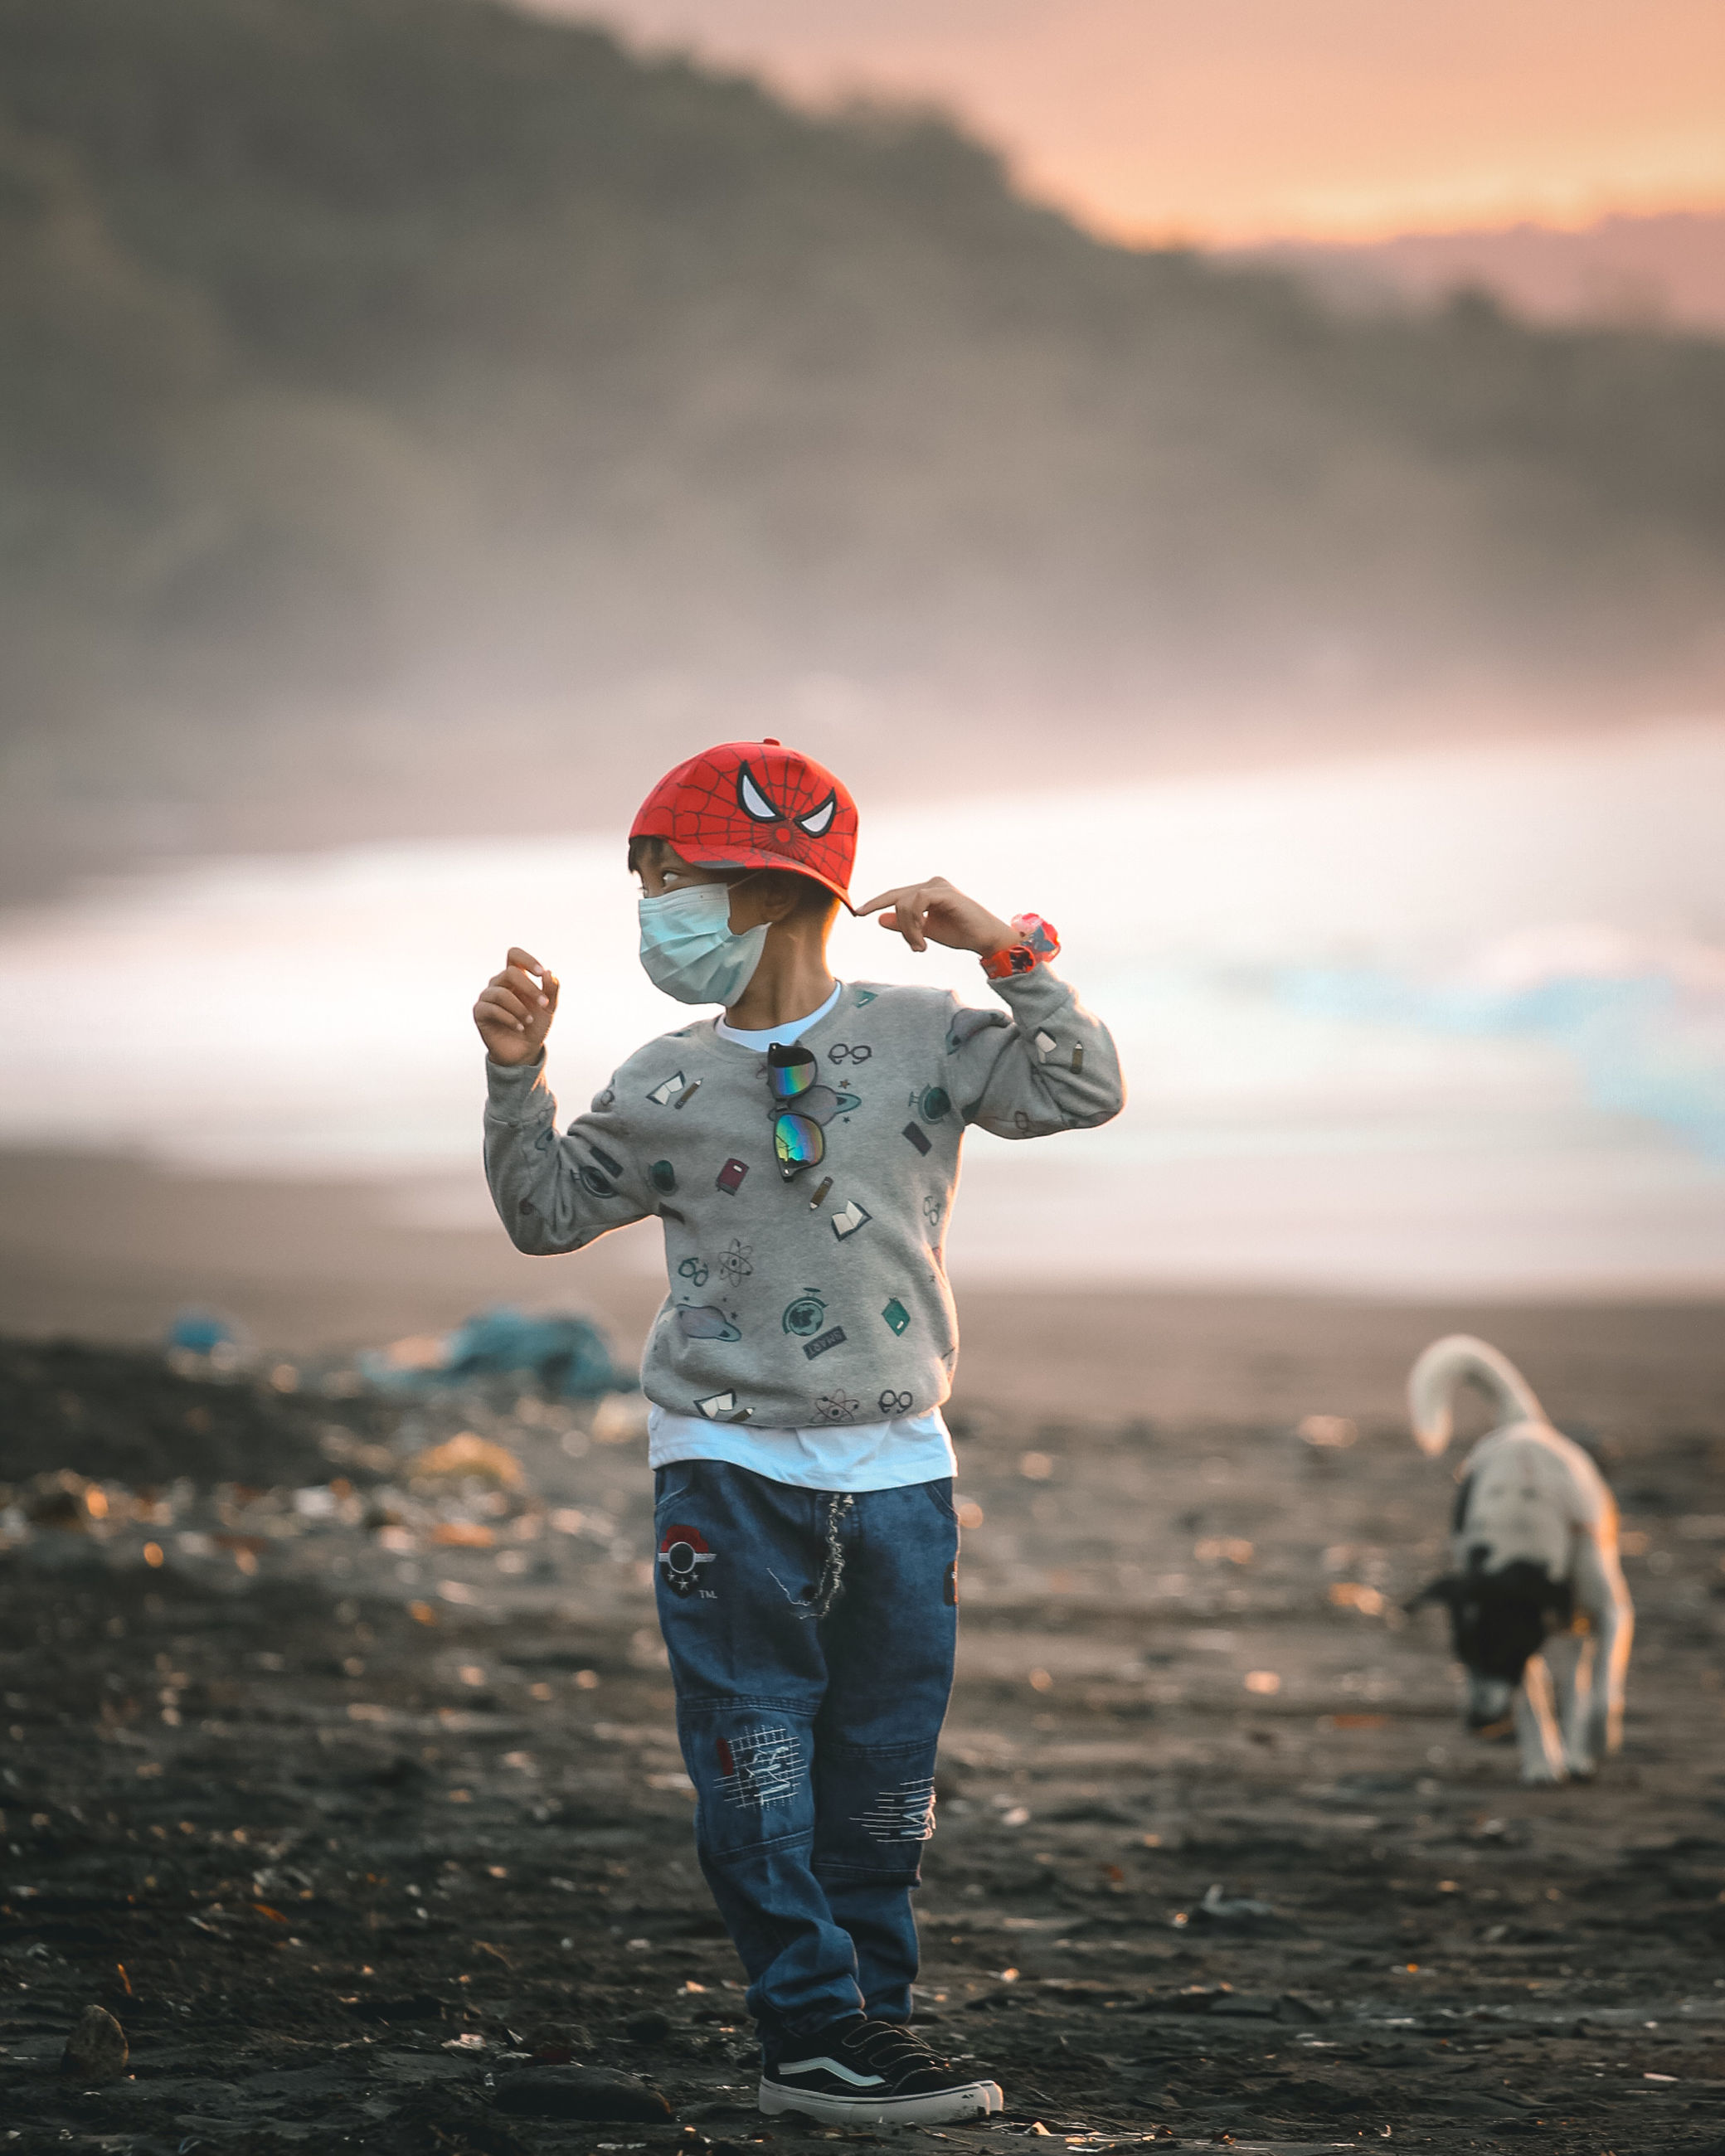 childhood, child, animal, animal themes, full length, men, one animal, sky, dog, one person, nature, mammal, domestic animals, land, sea, emotion, standing, clothing, person, canine, toddler, blue, pet, happiness, fun, cloud, cute, sunset, outdoors, beach, landscape, smiling, casual clothing, holding, adult, lap dog, positive emotion, front view